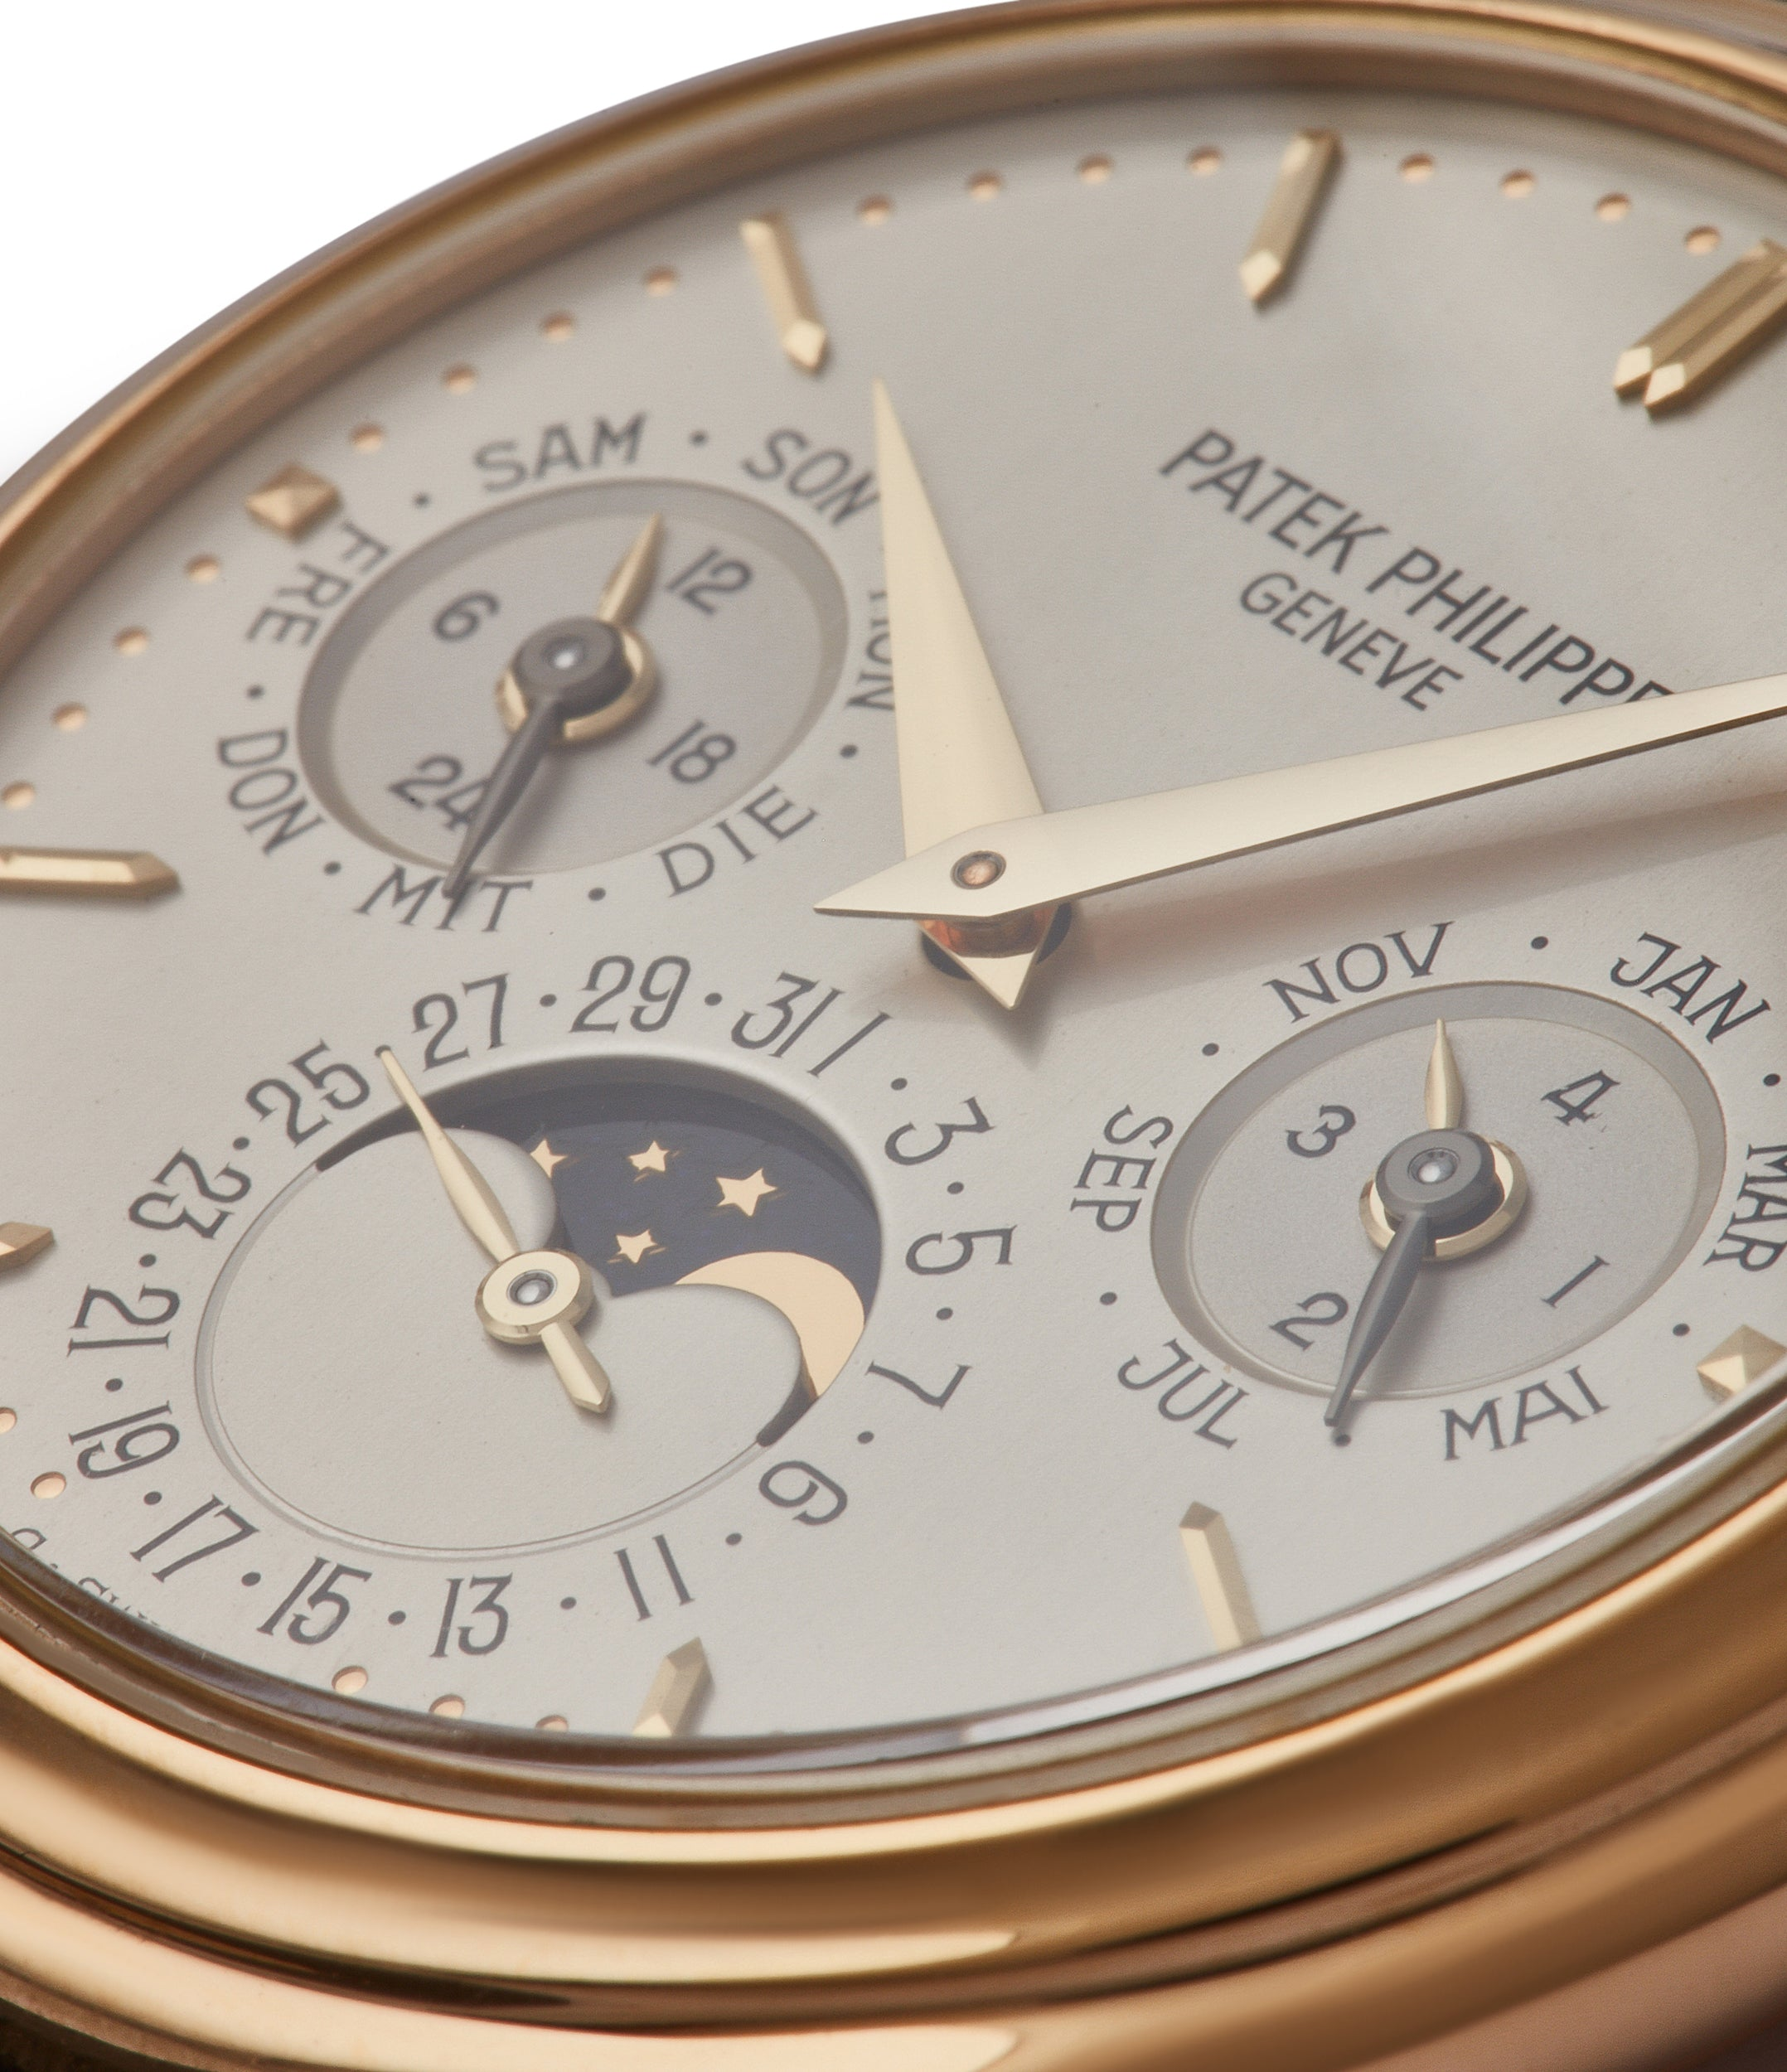 silver German dial Patek Philippe 3940J first series yellow gold perpetual calendar dress watch for sale online at A Collected Man London